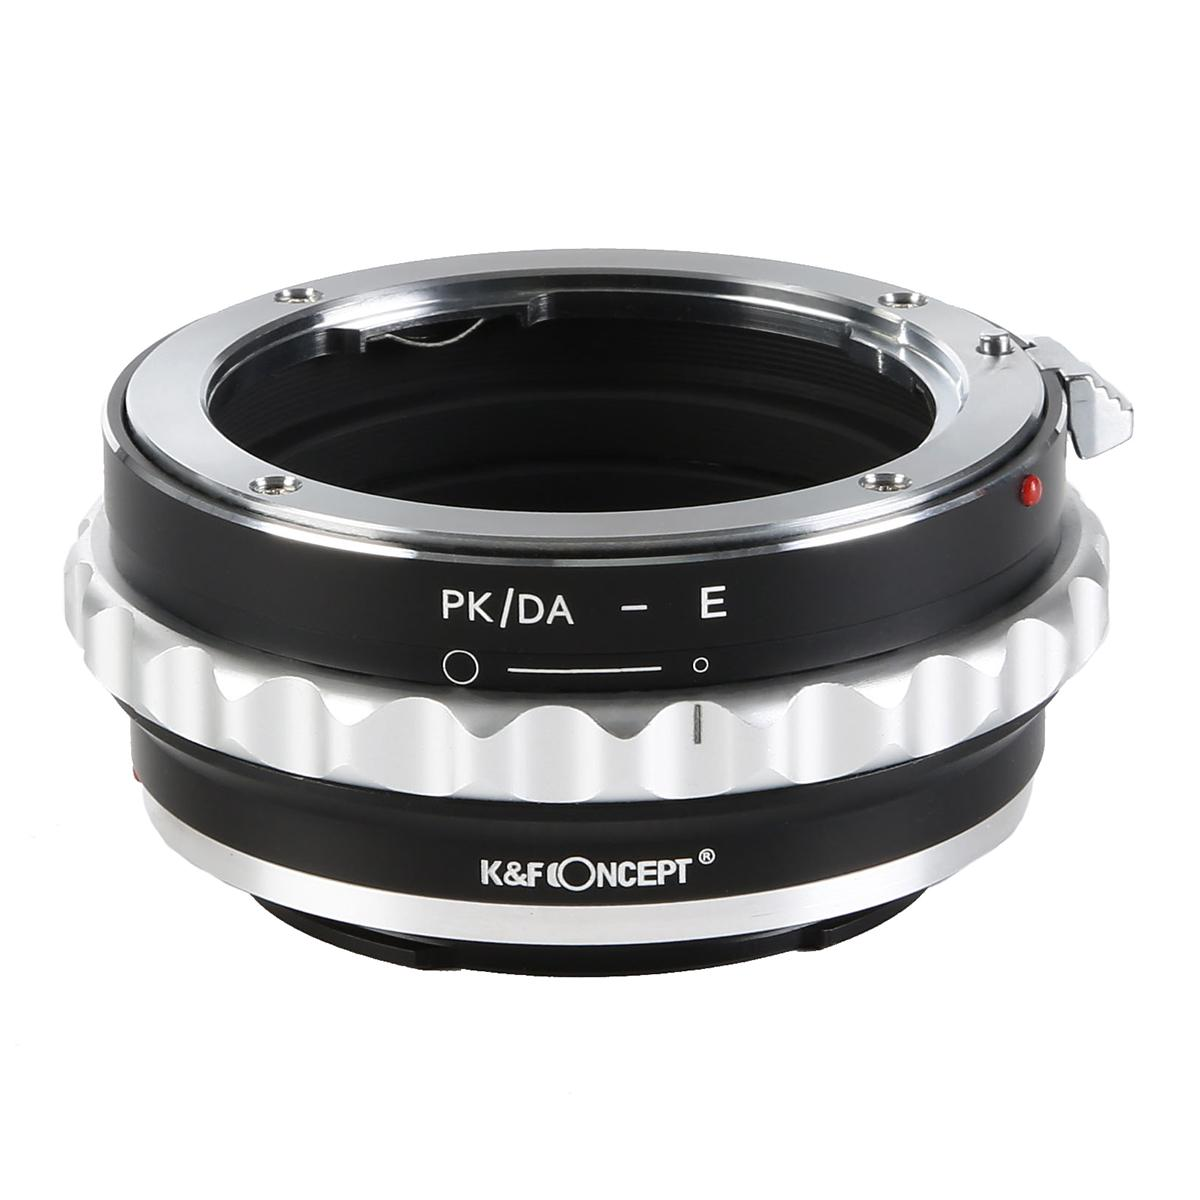 K&F M35101 Pentax K/M/A/FA/DA Lenses to Sony E Lens Mount Adapter For DSLR